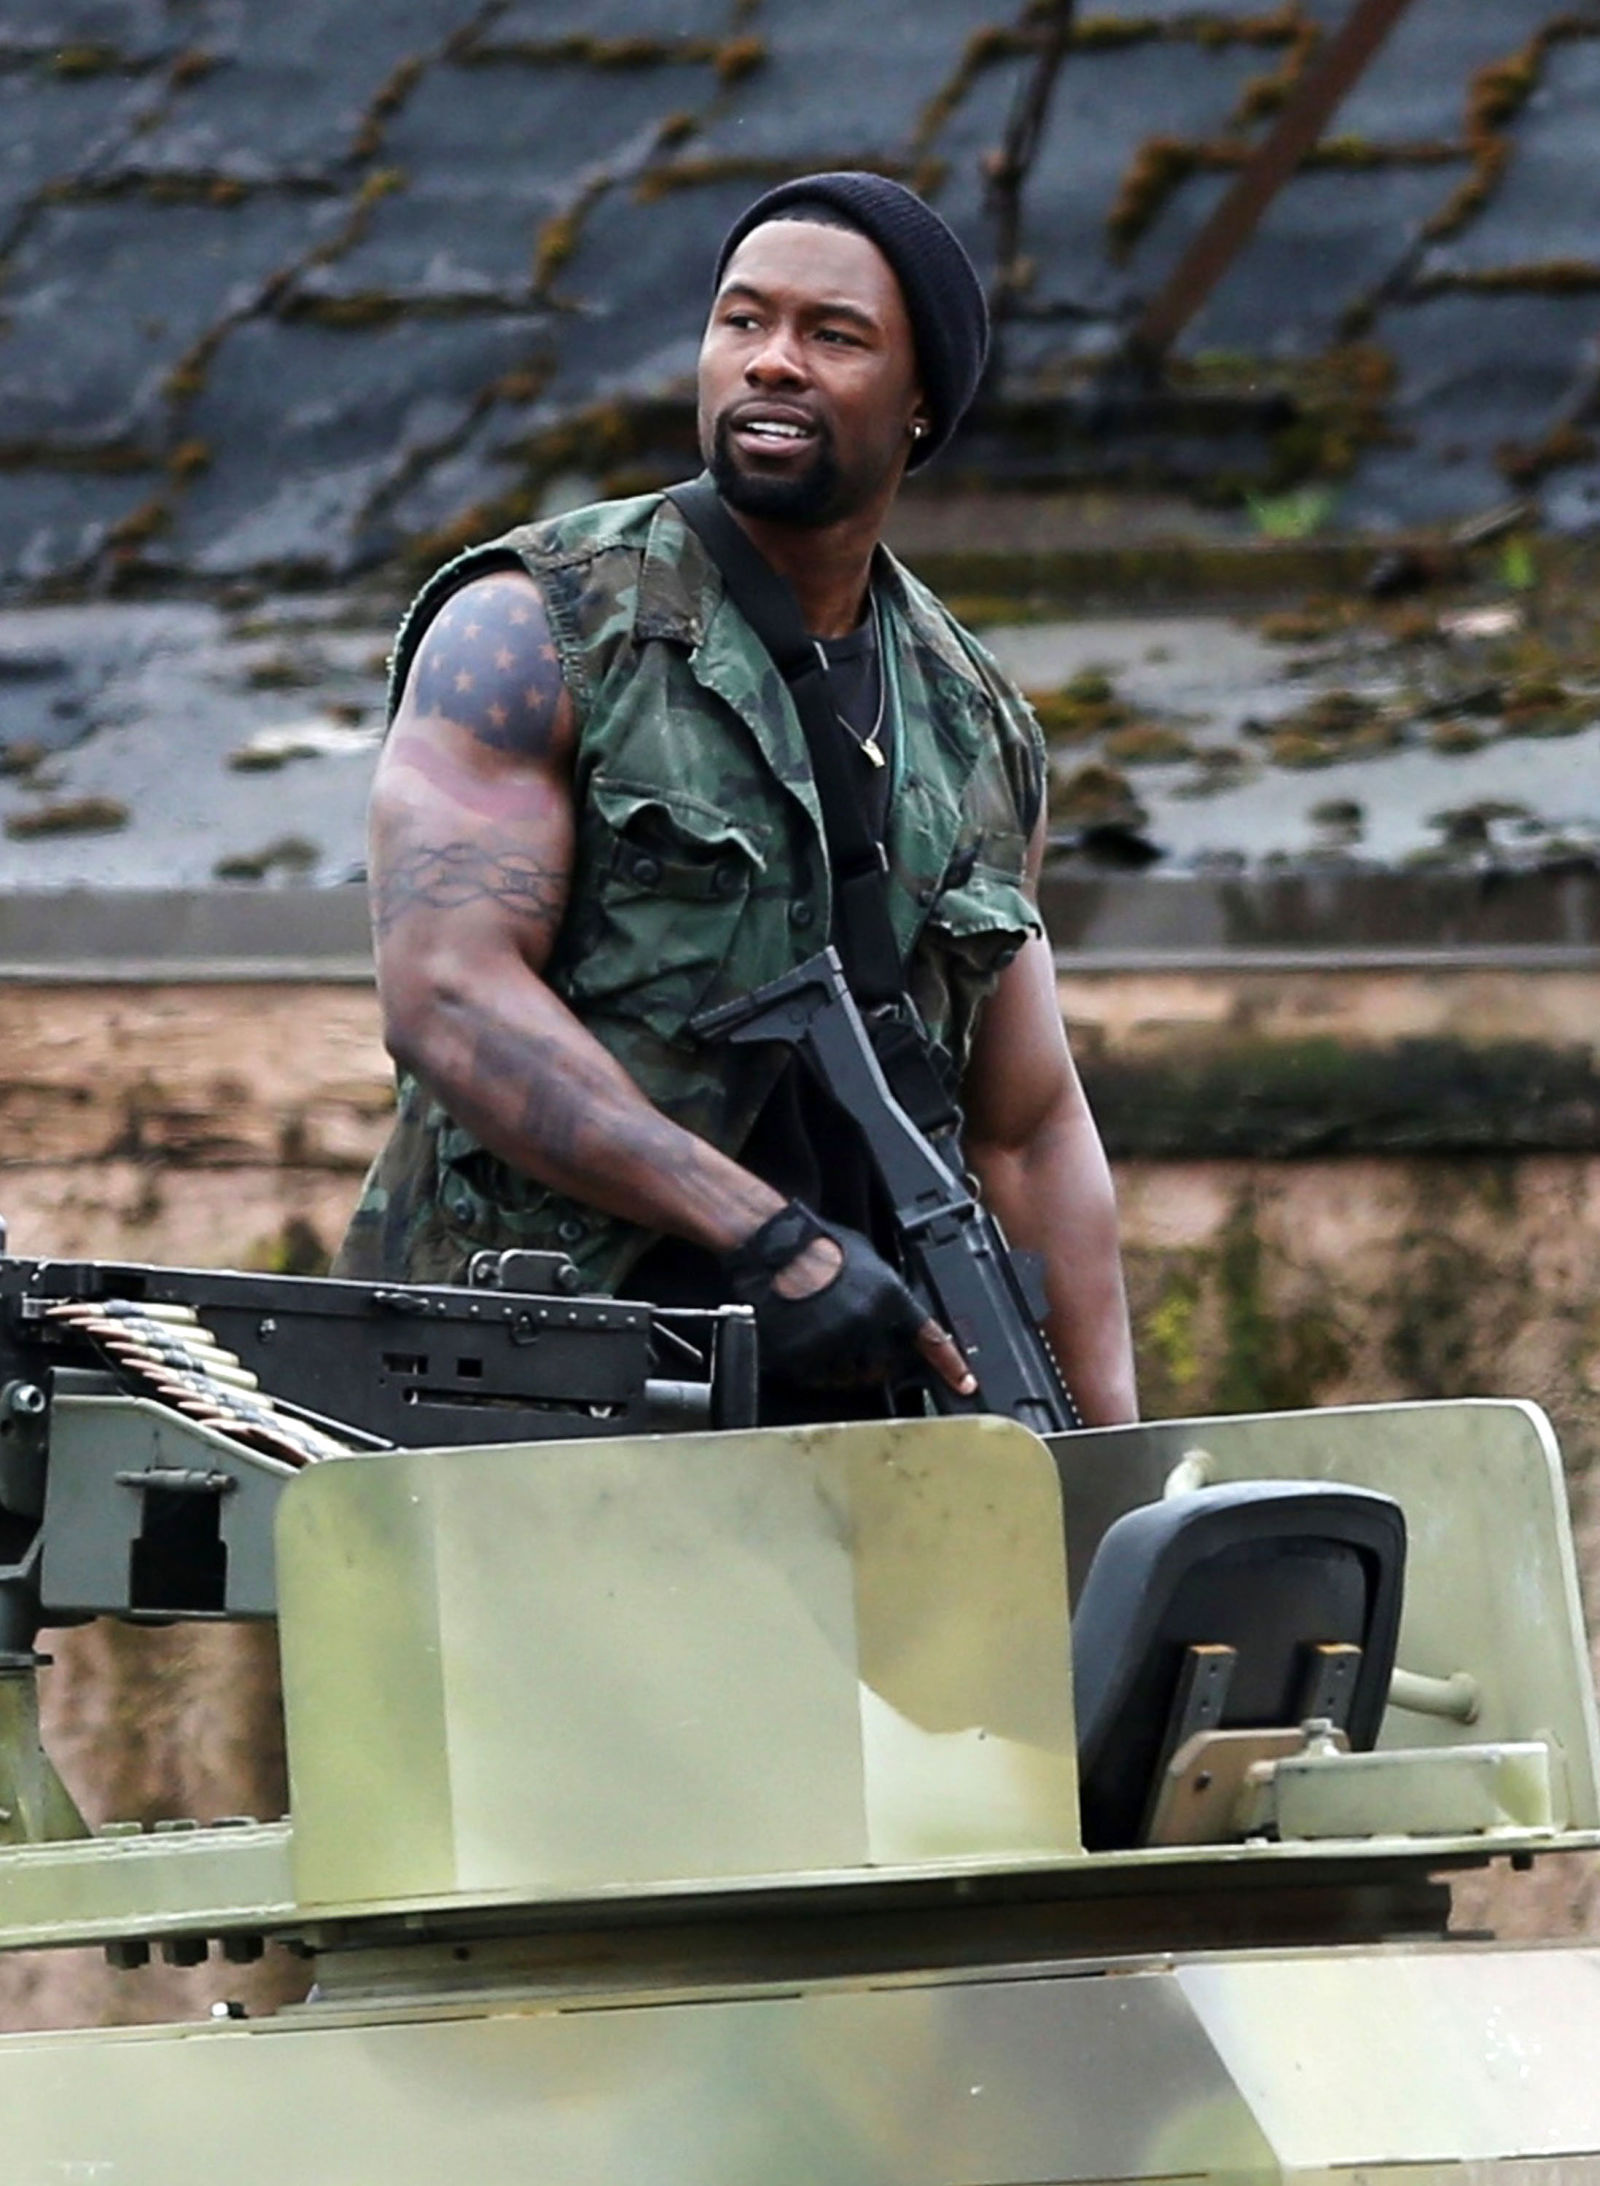 The Predator (Predator 4) set photos